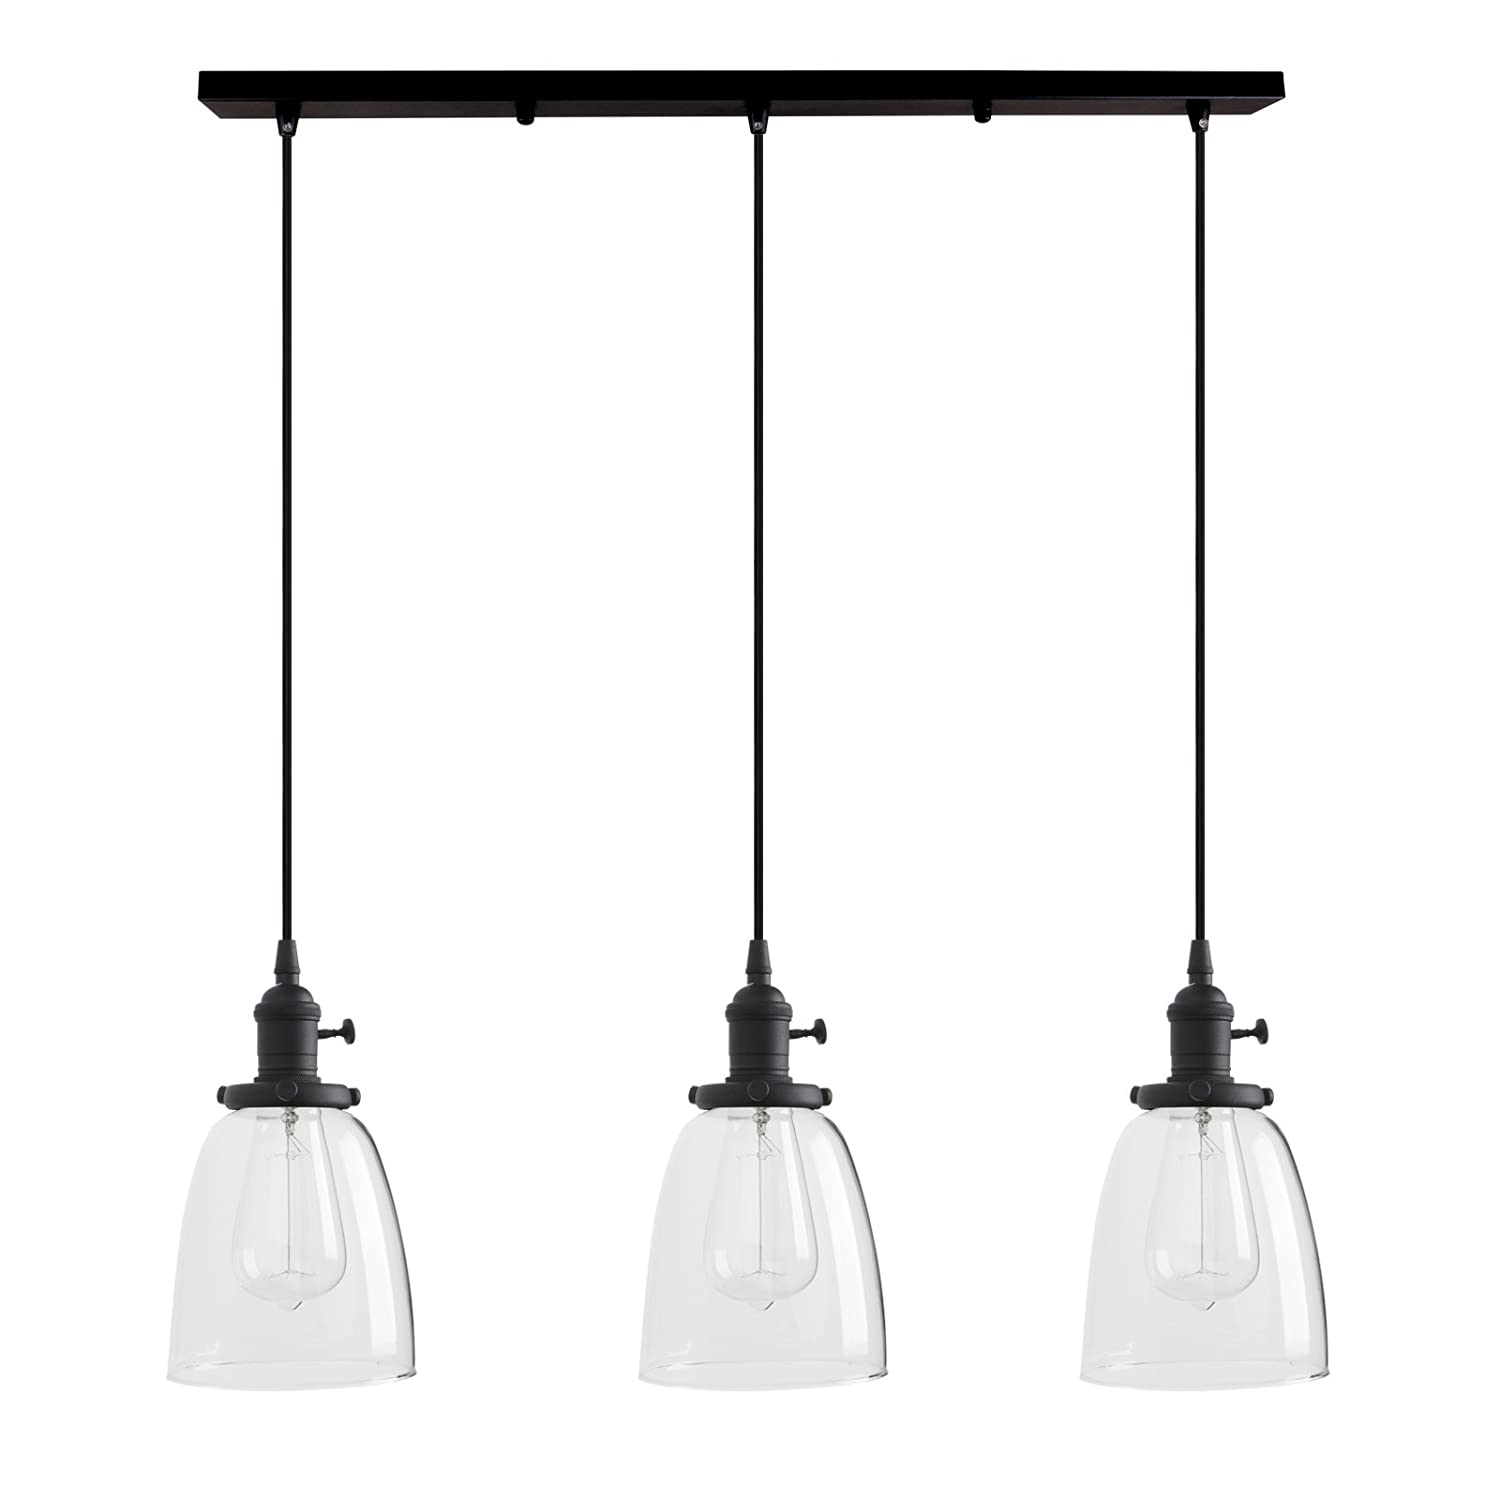 Permo Vintage Rustic Industrial 3-Lights Kitchen Island Chandelier Triple 3 Heads Pendant Hanging Ceiling Lighting Fixture with Oval Cone Clear Glass Shade (Black)